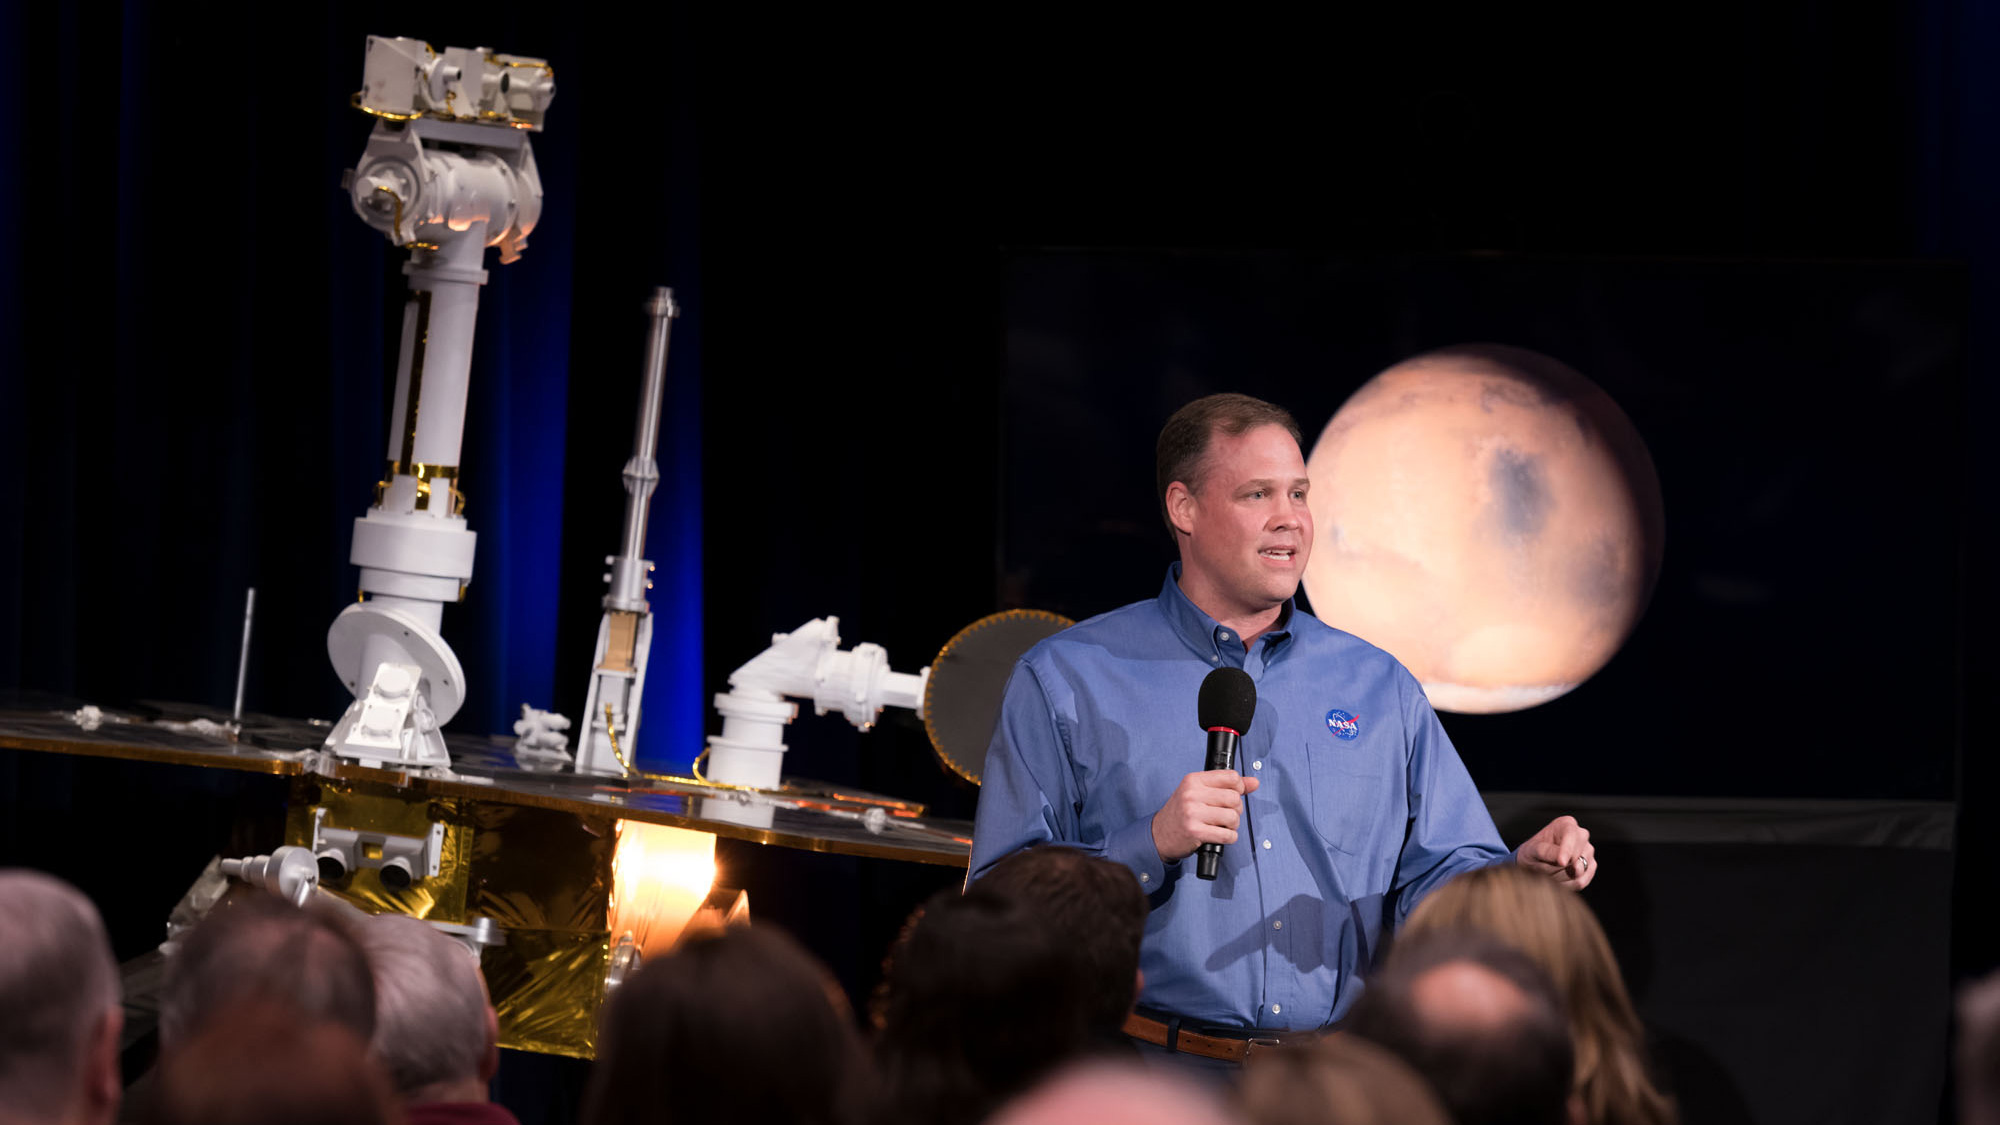 NASA Administrator Jim Bridenstine discusses the successful completion of the Opportunity Mars rover mission during a news briefing at the agency's Jet Propulsion Laboratory in Pasadena, California. Behind him to the left is a model of Opportunity and to the right behind him is an image of Mars.